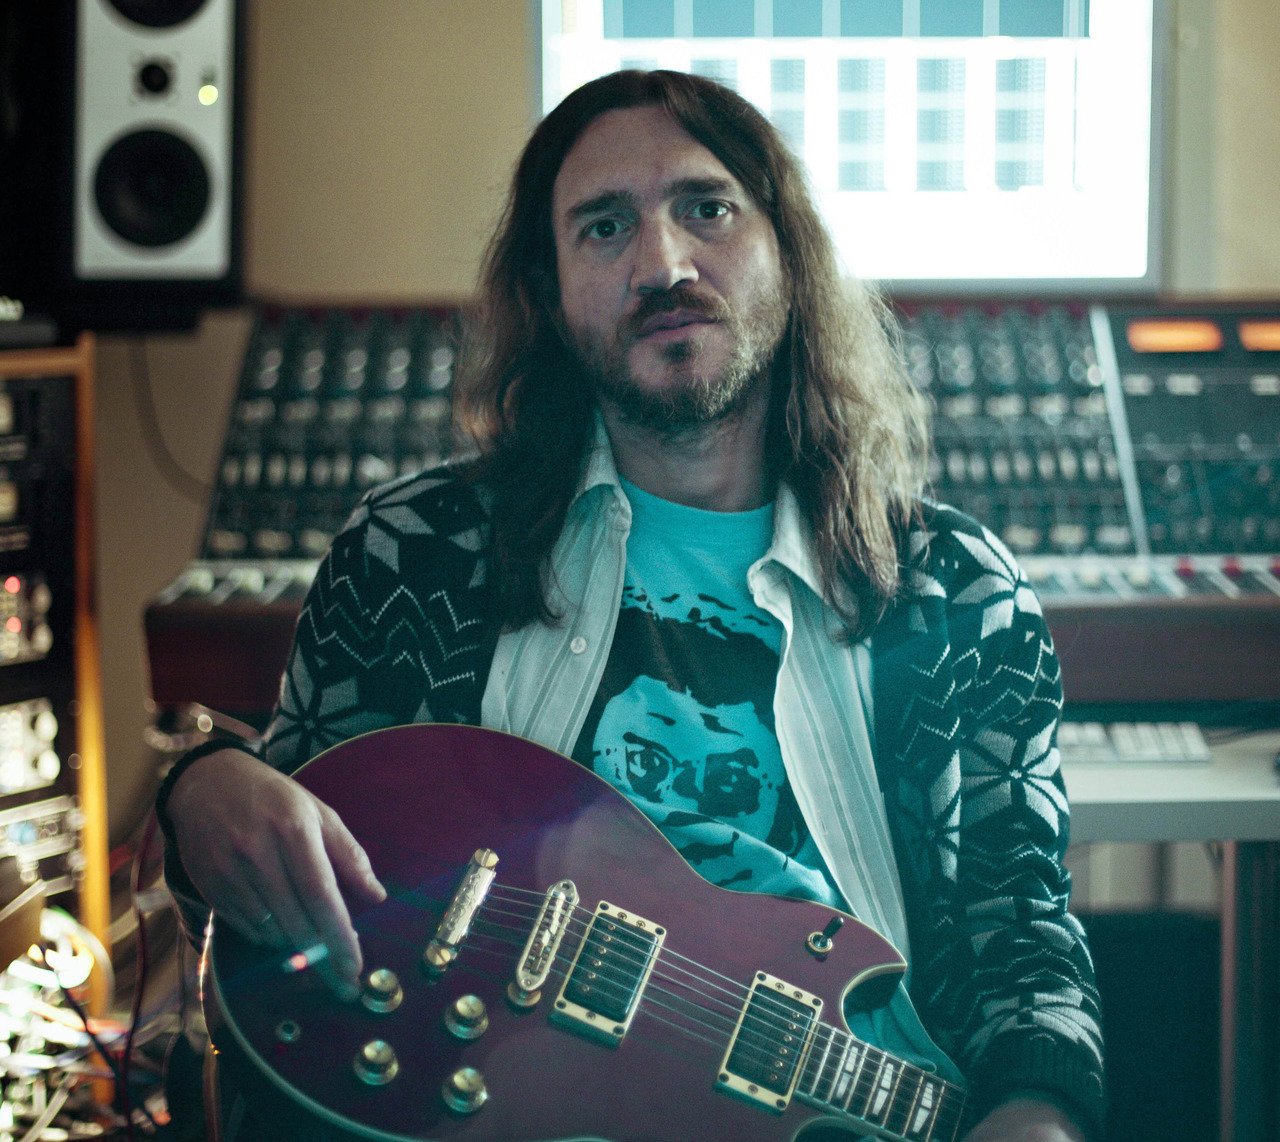 Letur-Lefr redhotchilipeppersfansite:  New photo of John Frusciante. By Mike Piscitelli.